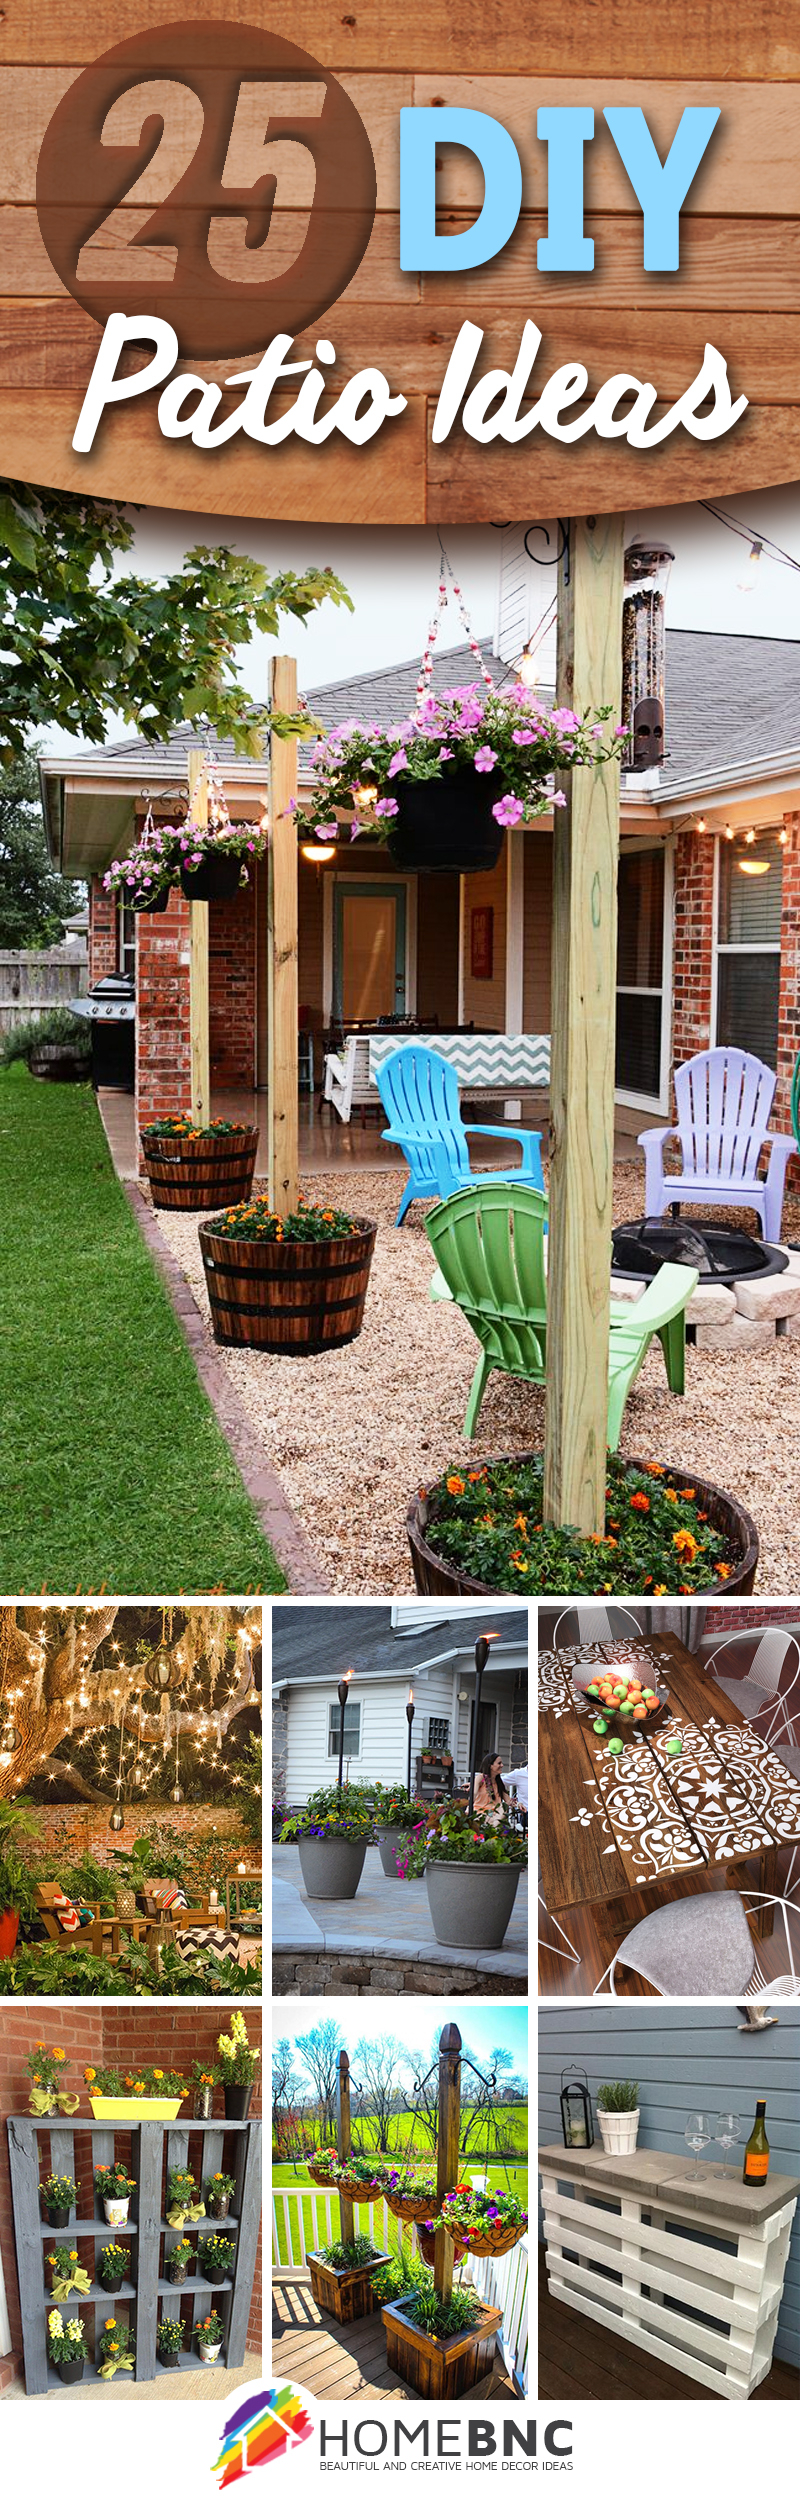 25 Best Diy Patio Decoration Ideas And Designs For 2019 pertaining to Decorating Backyard Ideas